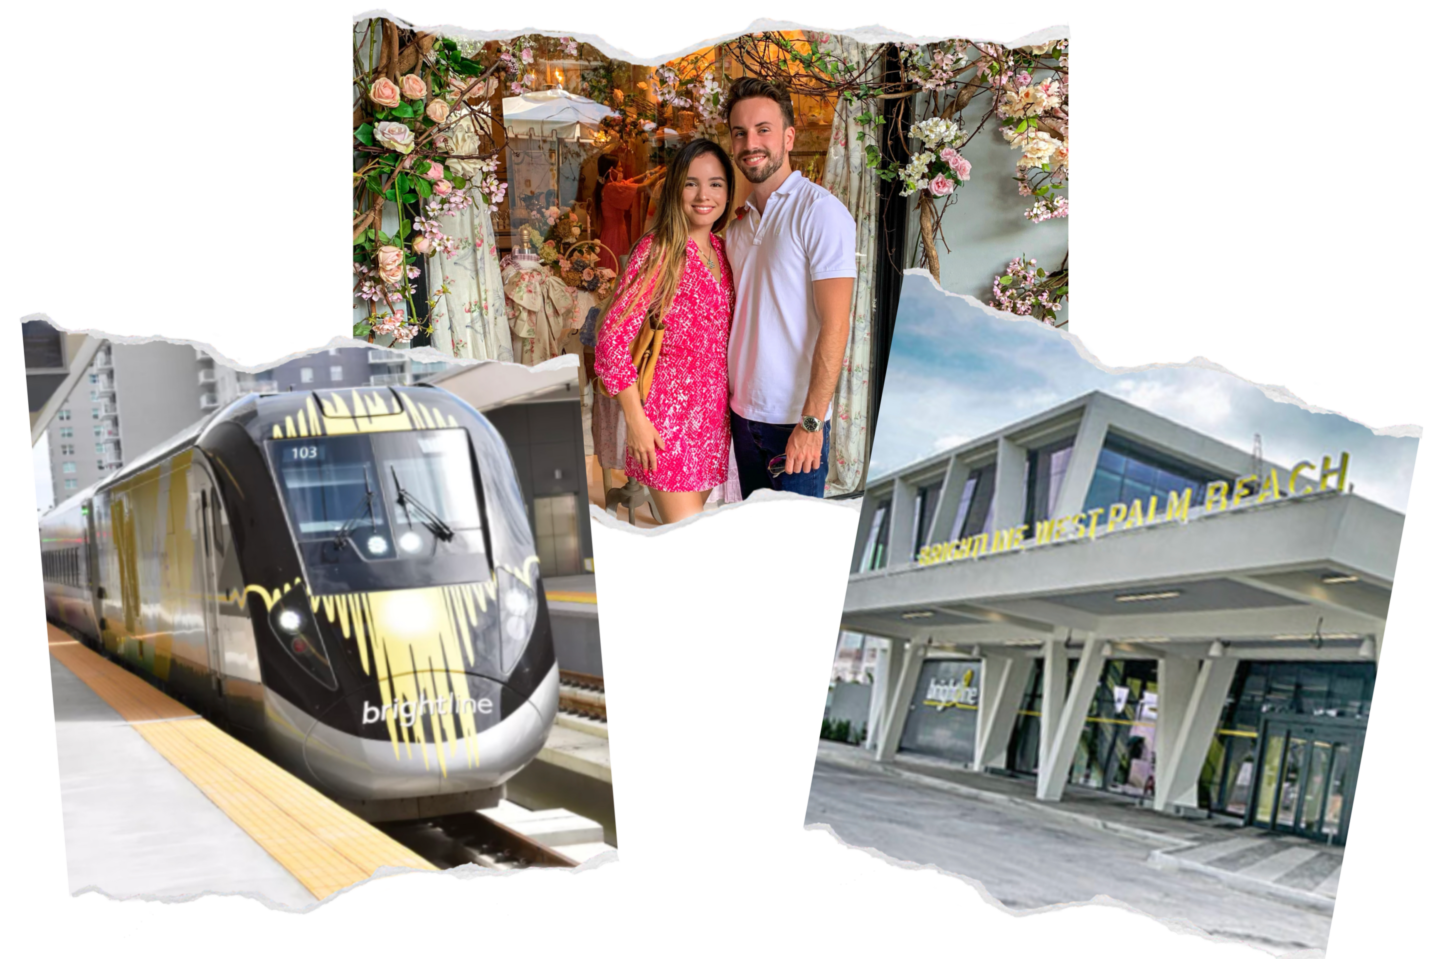 Brightline, Miami date night ideas